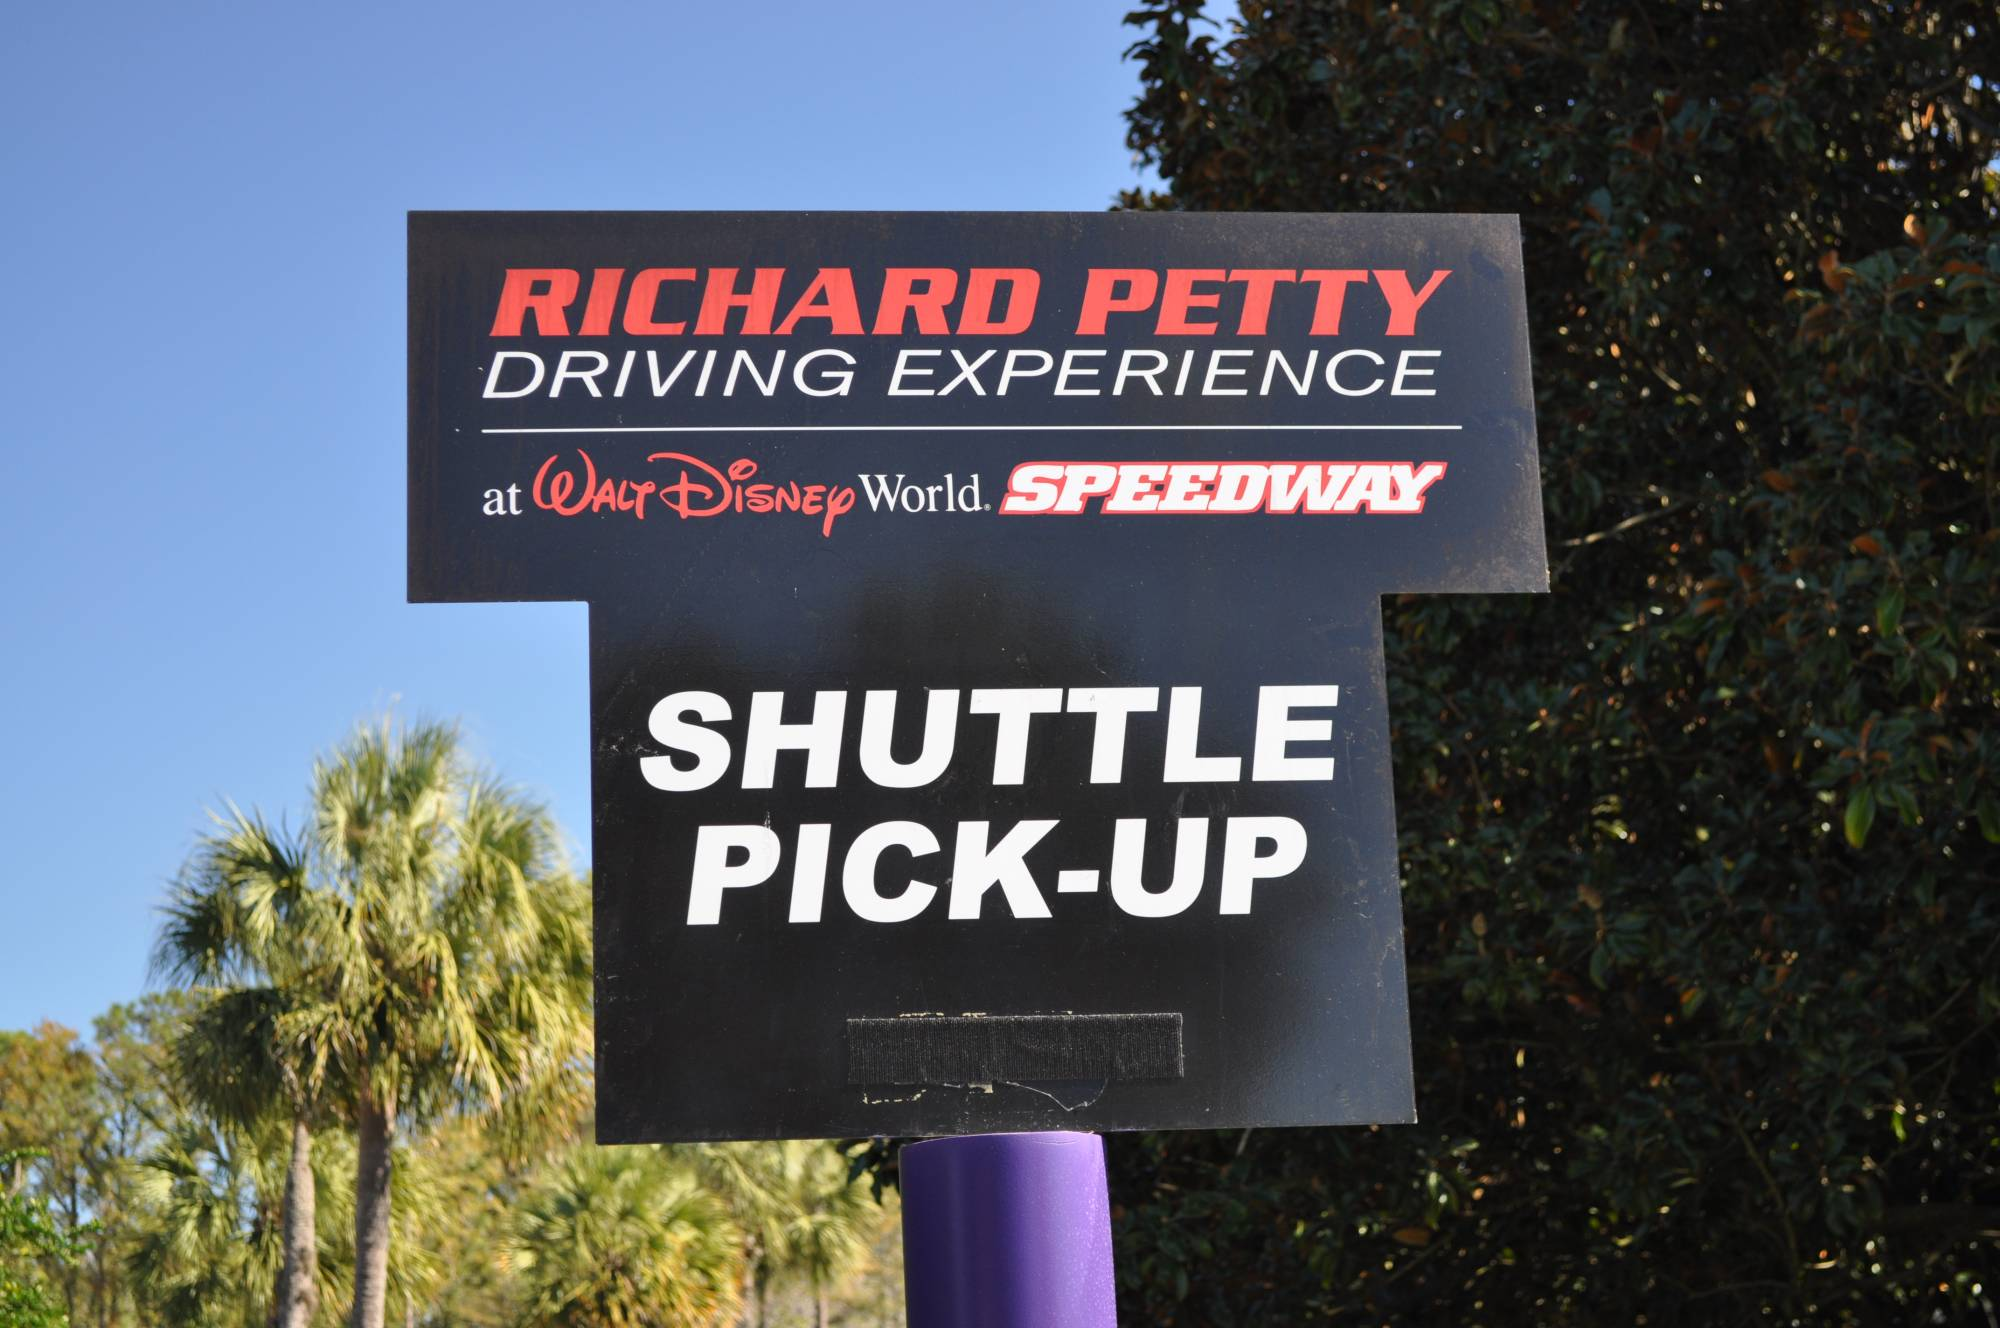 Feel the Need for Speed at the Richard Petty Driving Experience |PassPorter.com